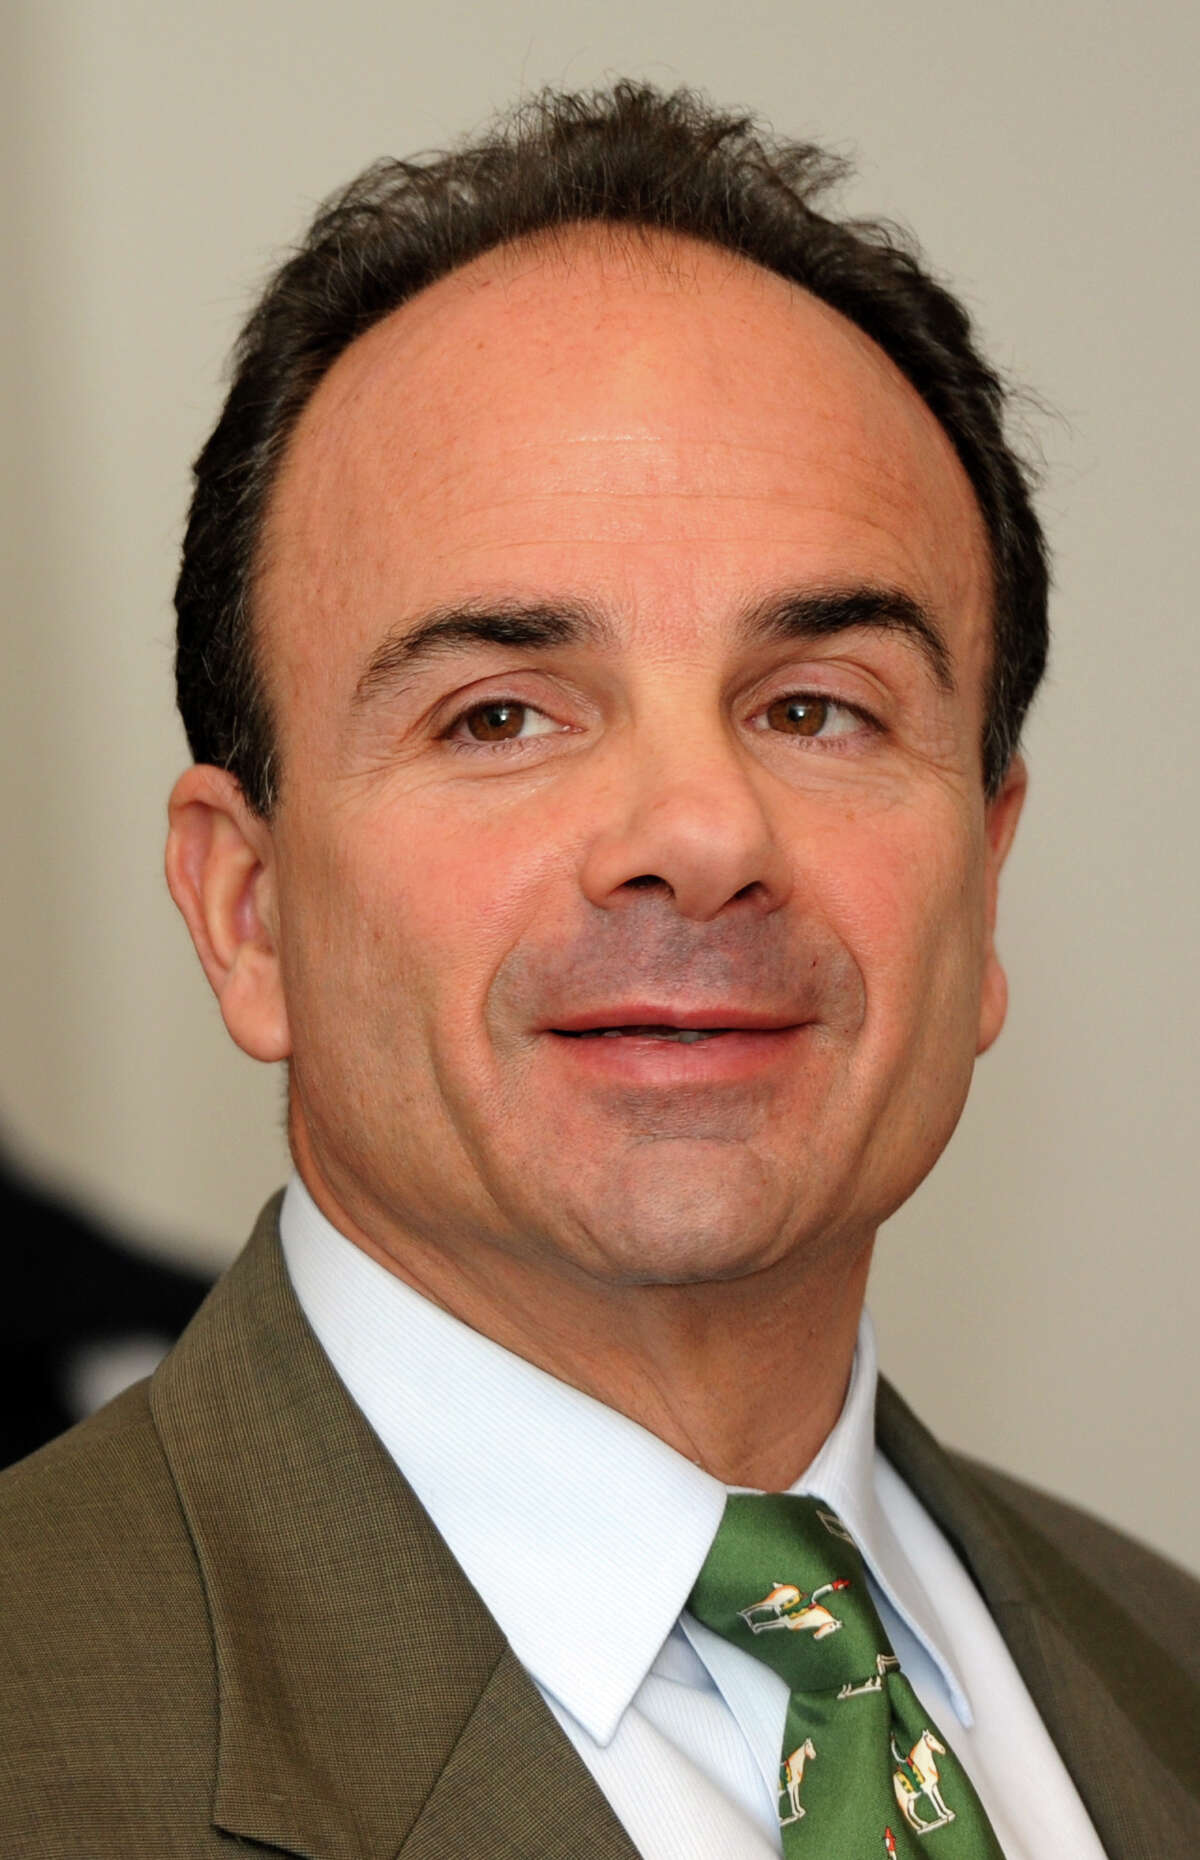 Bridgeport Mayor Joe Ganim.